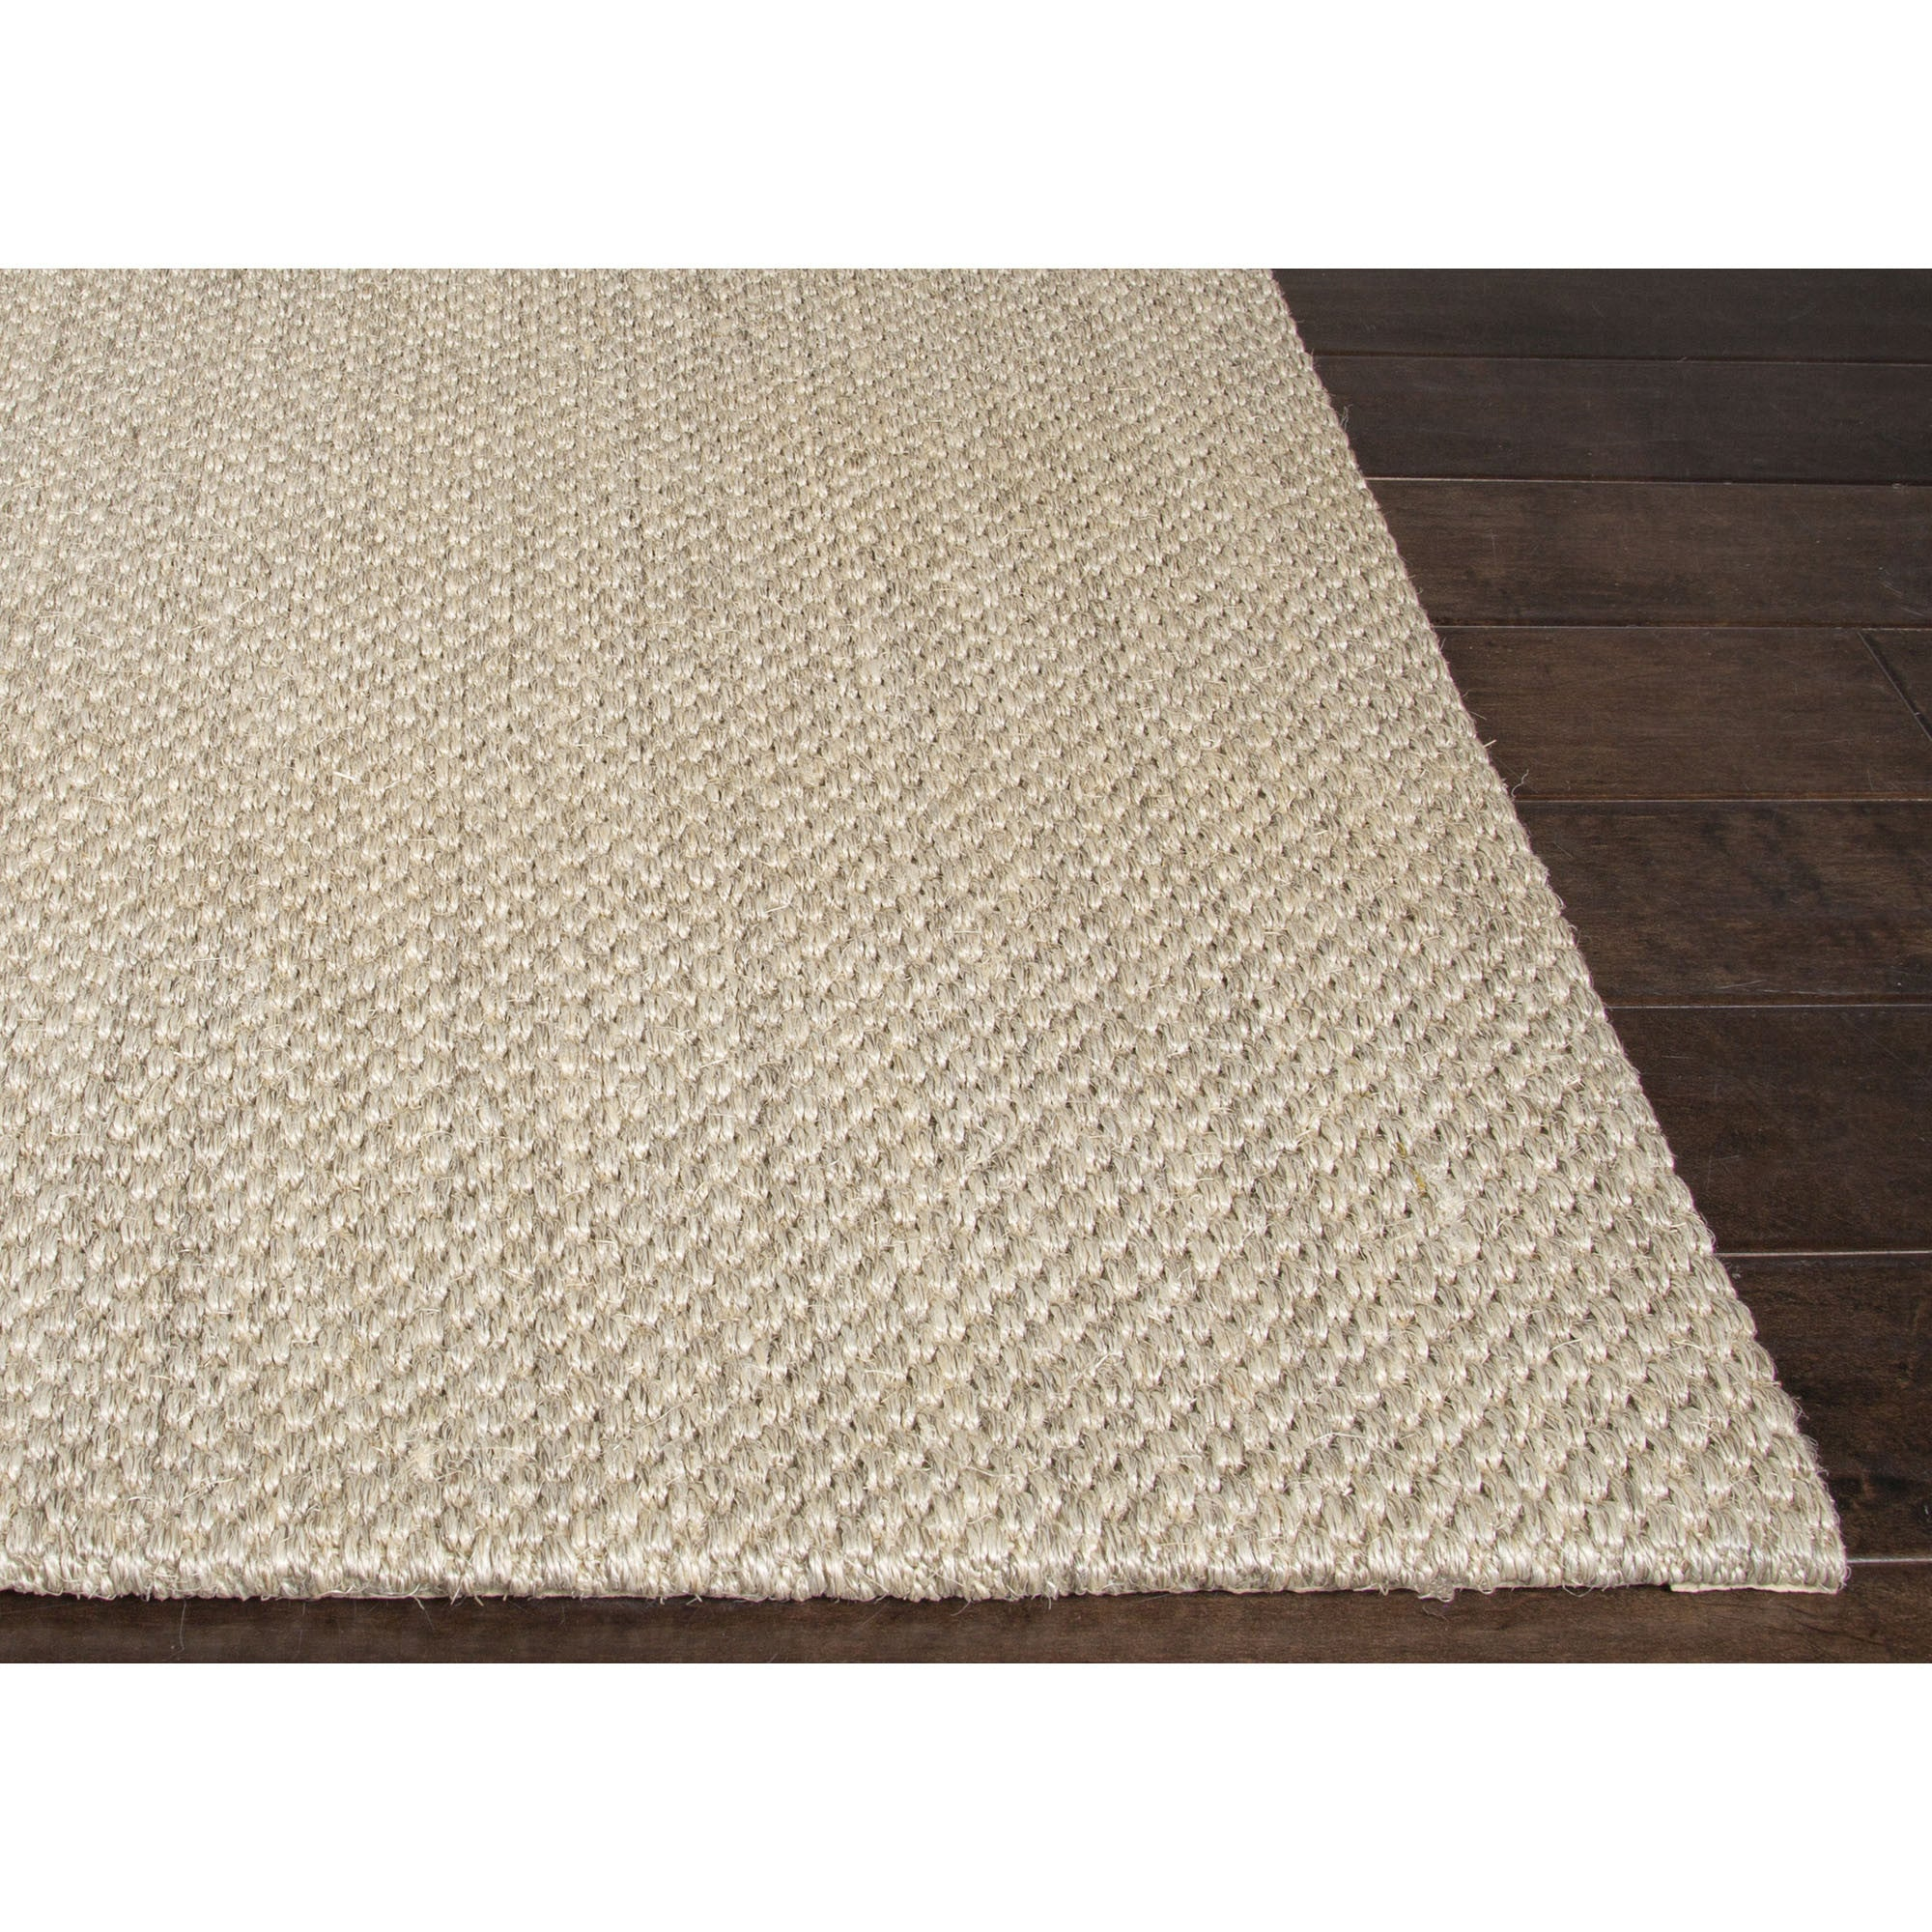 Jaipur Rugs Naturals Solid Pattern Taupe Ivory Sisal Area